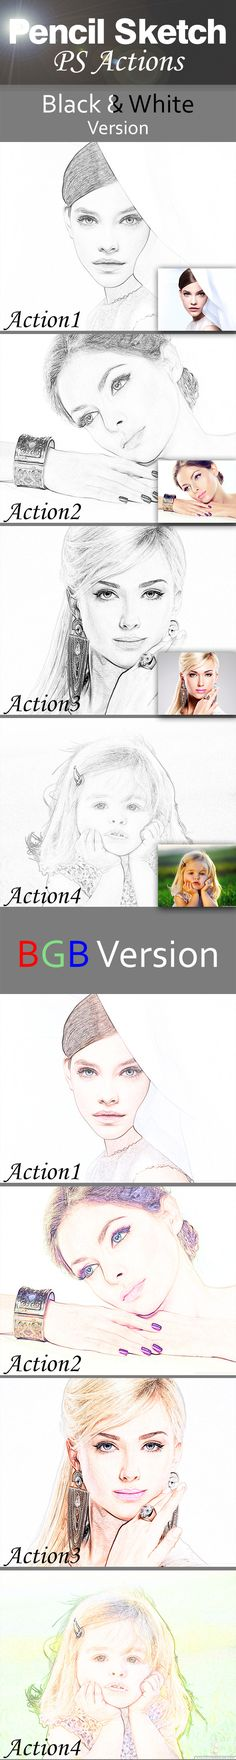 Pencil Sketch Actions #photoeffect #action Download: http://graphicriver.net/item/pencil-sketch-actions/10365691?ref=ksioks